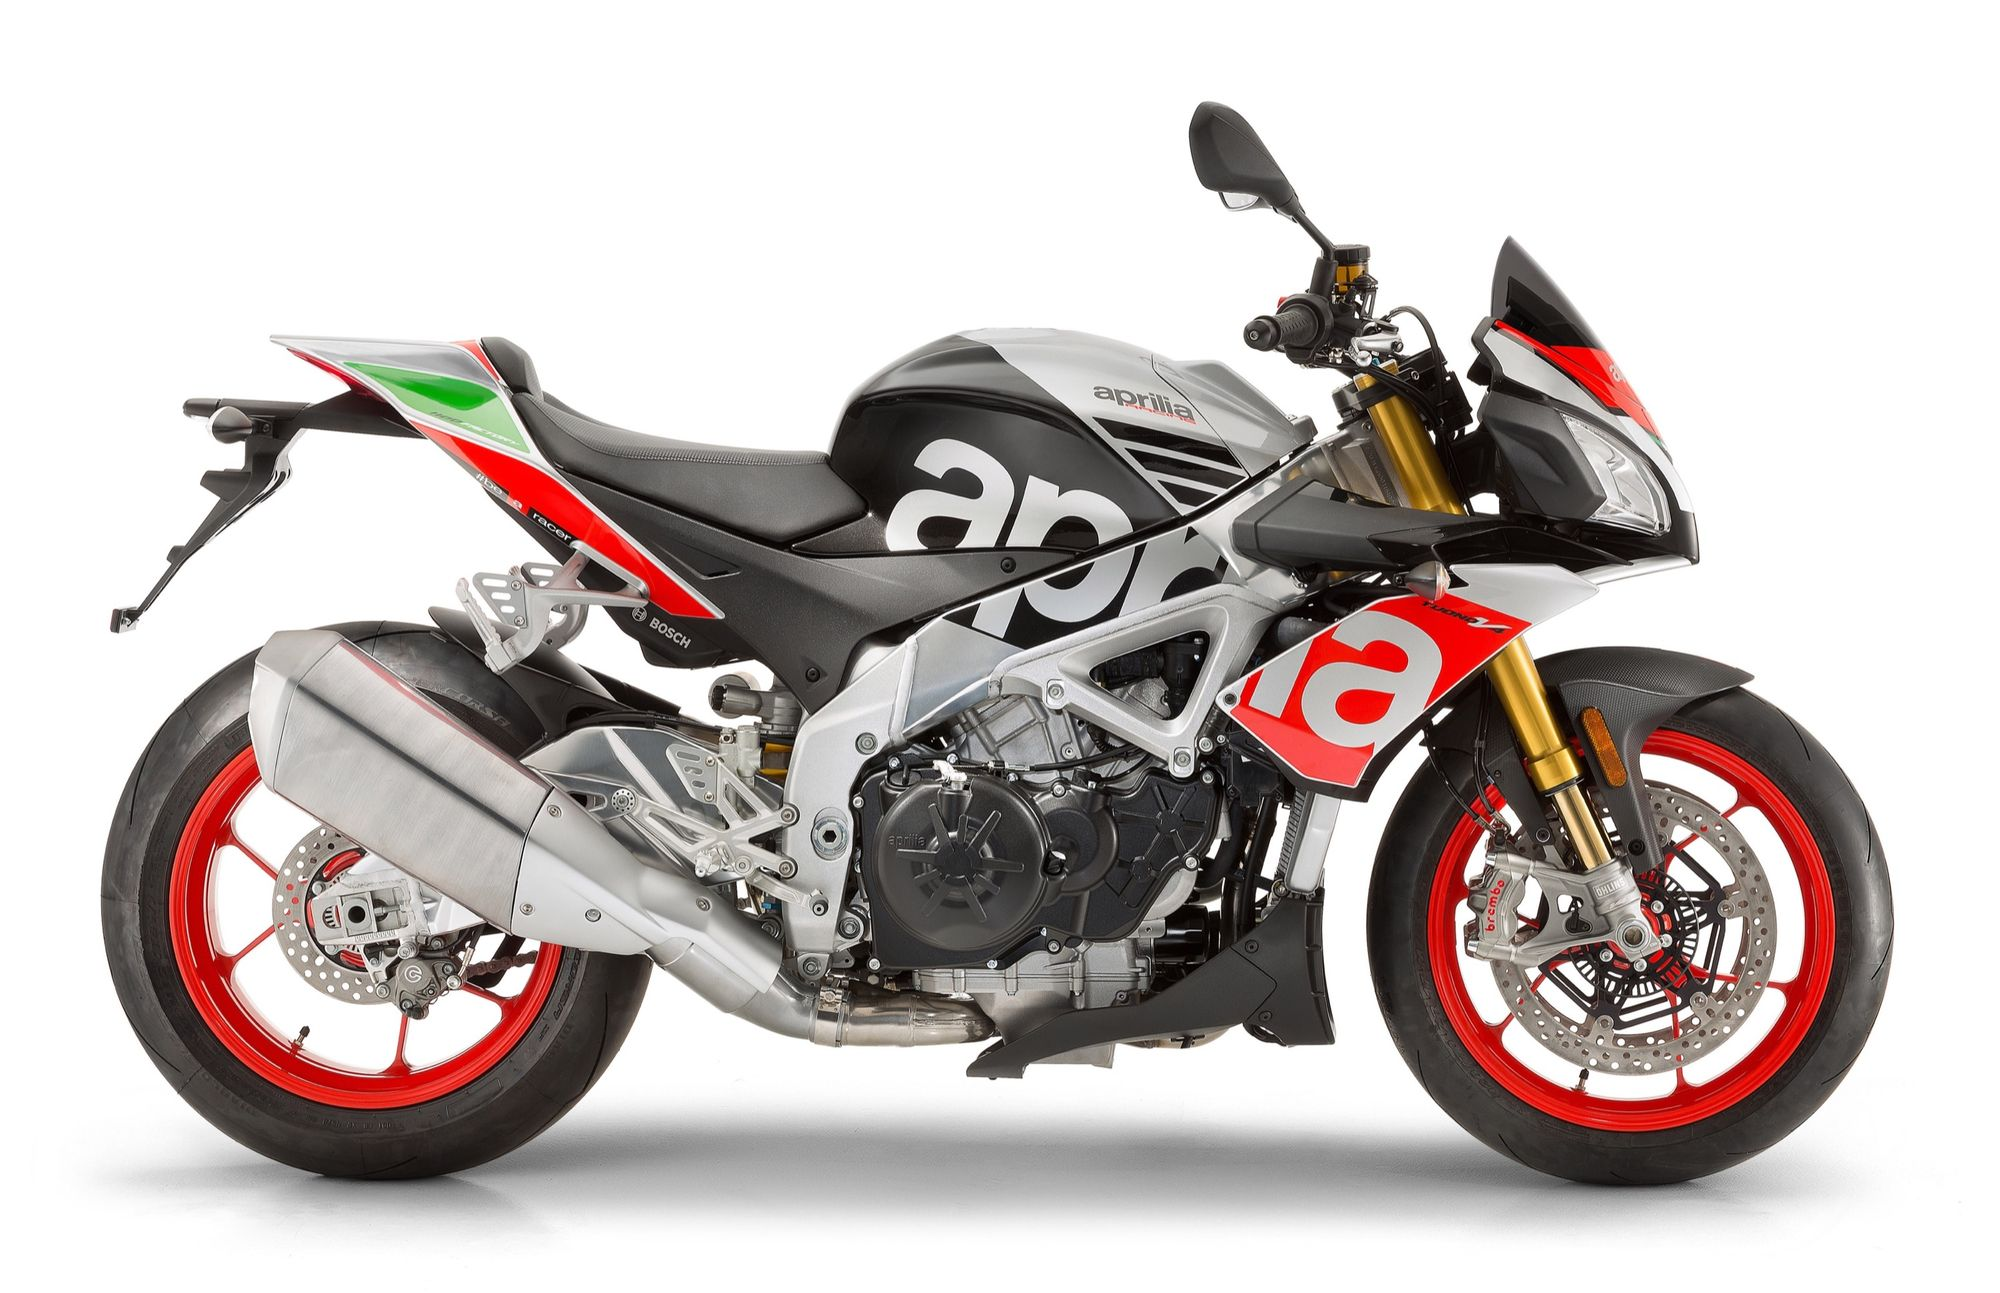 aprilia tuono v4 1100 rr book a test ride. Black Bedroom Furniture Sets. Home Design Ideas